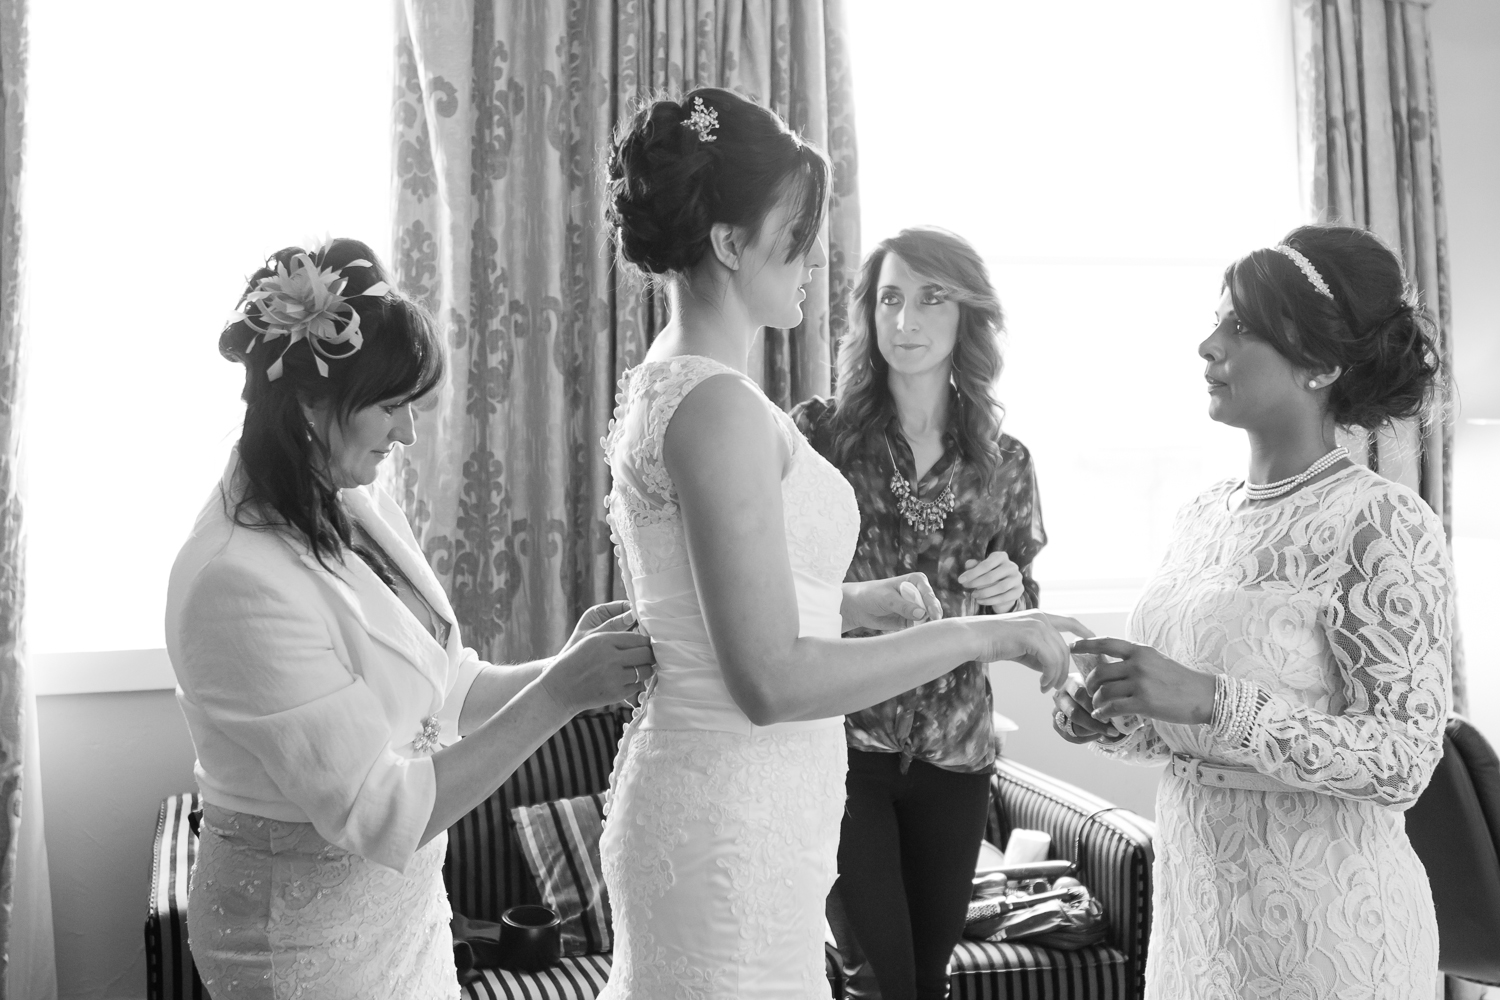 The bride is centre stage as her bridemaid, the hairdresser and her Mum encircle her and apply all the perfecting finishing touches to the bride's appearance